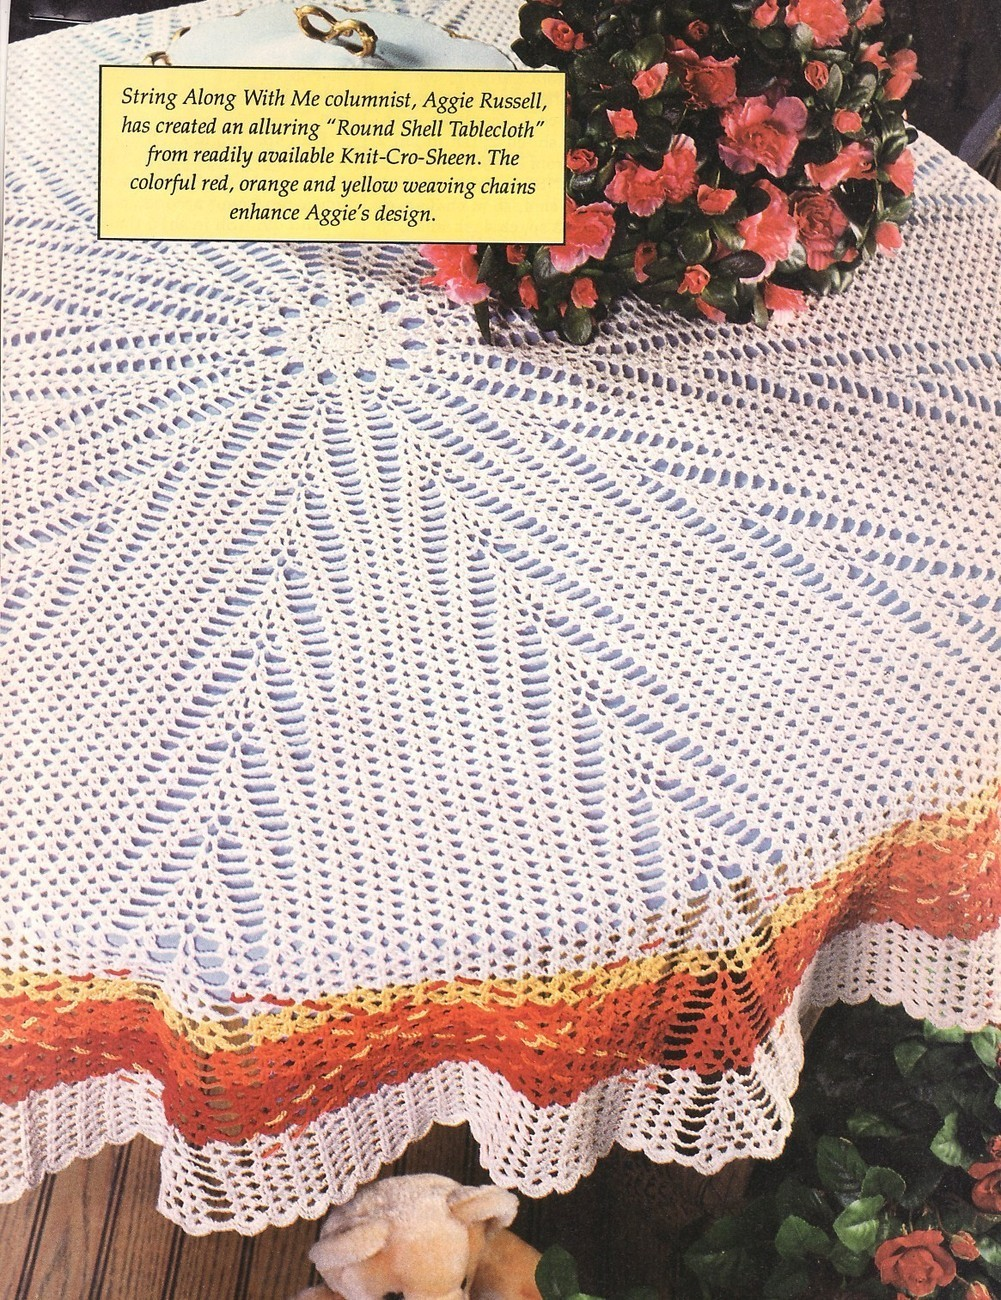 Crochet granny square tablecloth patterns manet for round tablecloth crochet patterns free patterns bankloansurffo Choice Image